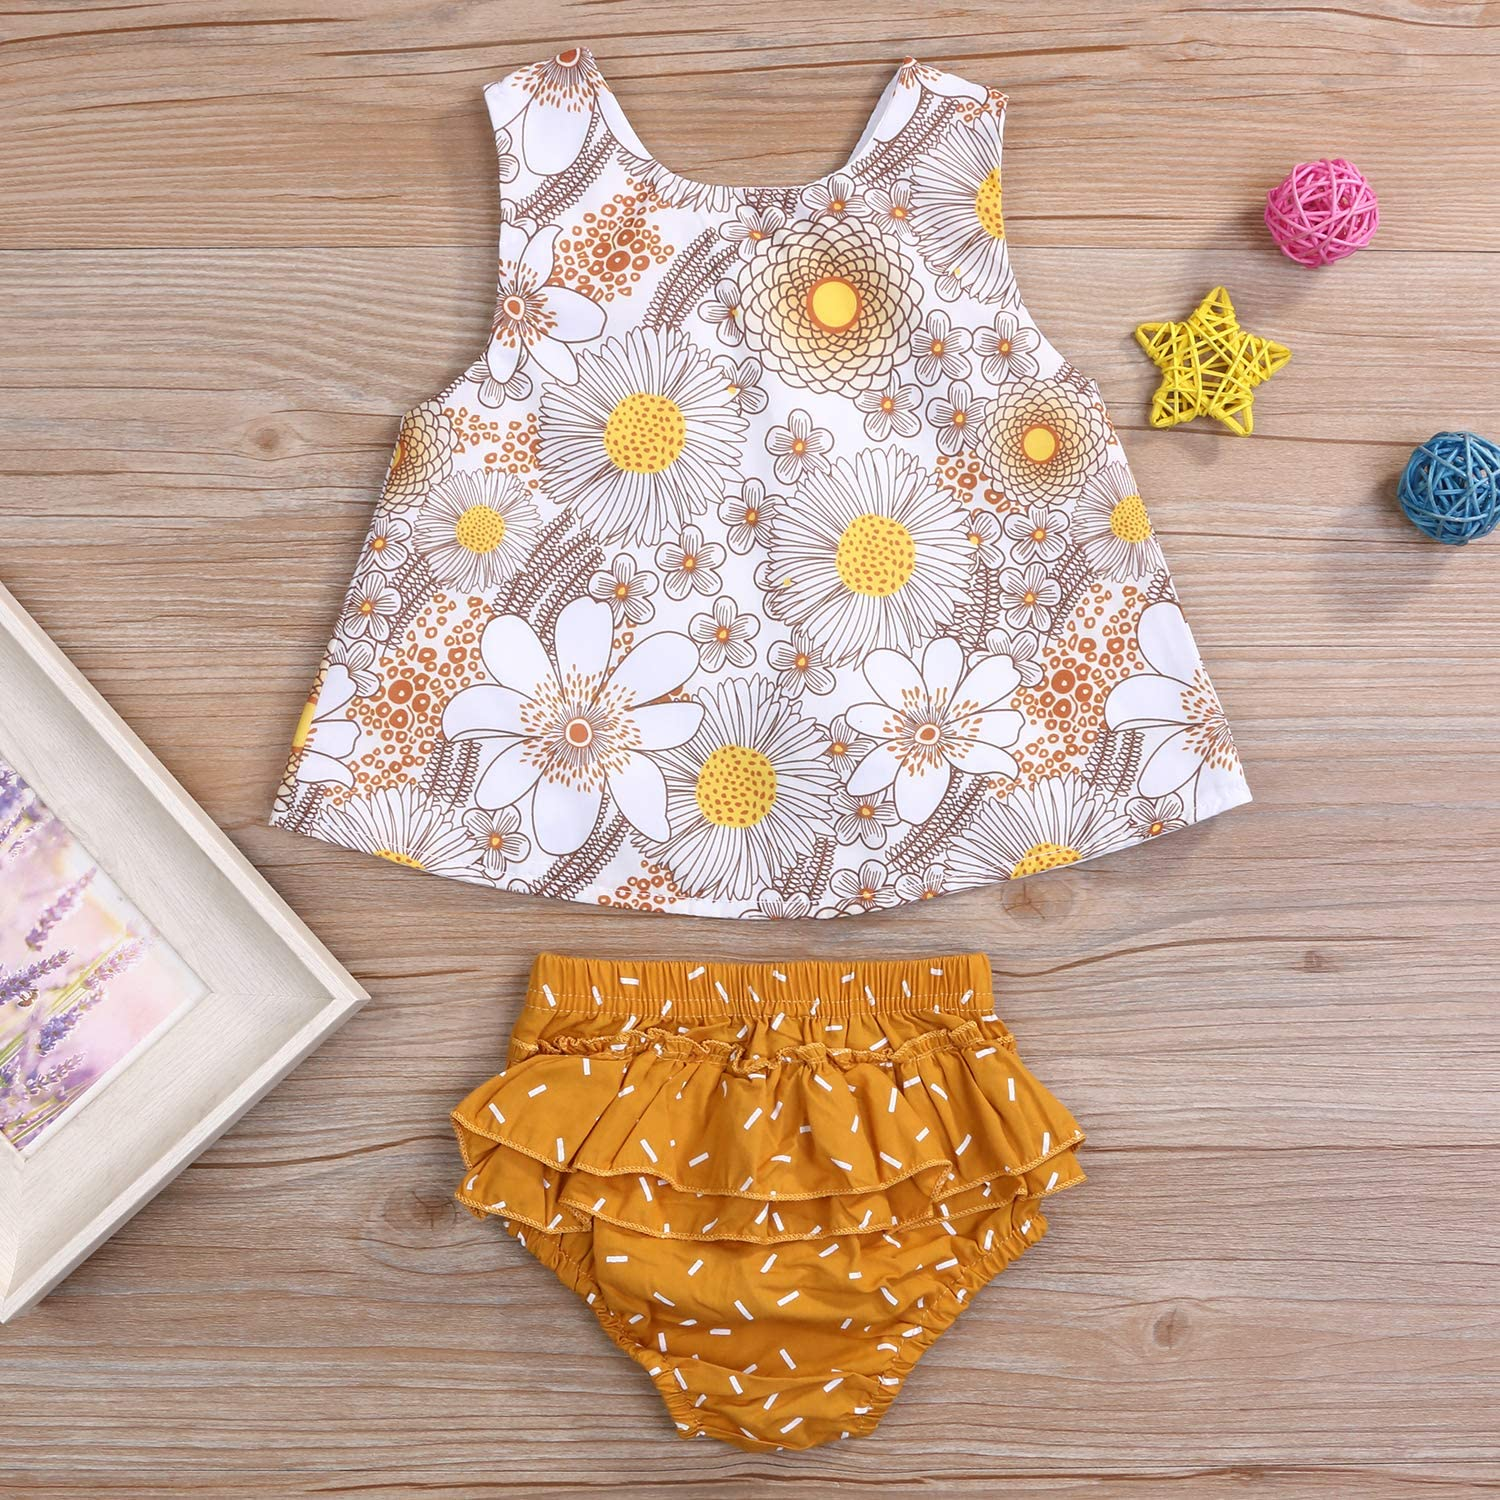 Ruffled Pants Shorts Set YOUNGER TREE Toddler Girls Clothes Outfit Floral T-Shirt Vest Tank Top